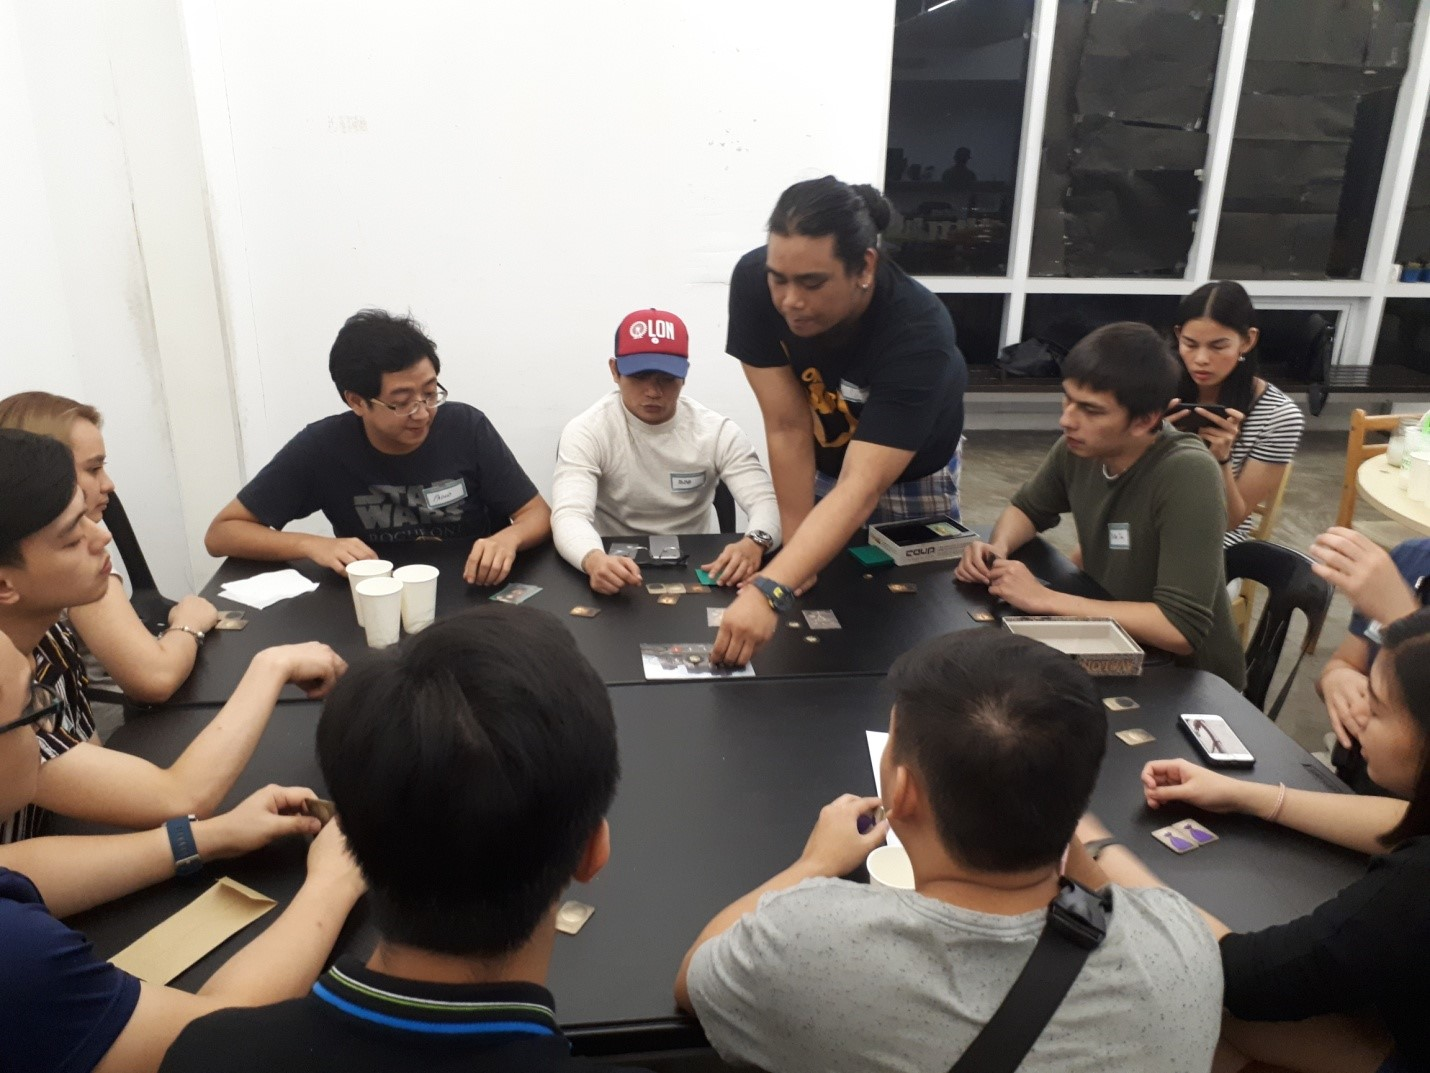 """At Truelogic, we believe that """"all work and no play"""" can put your balance out of whack. So we find time to gather round and play a serious round (or 10) of board games."""